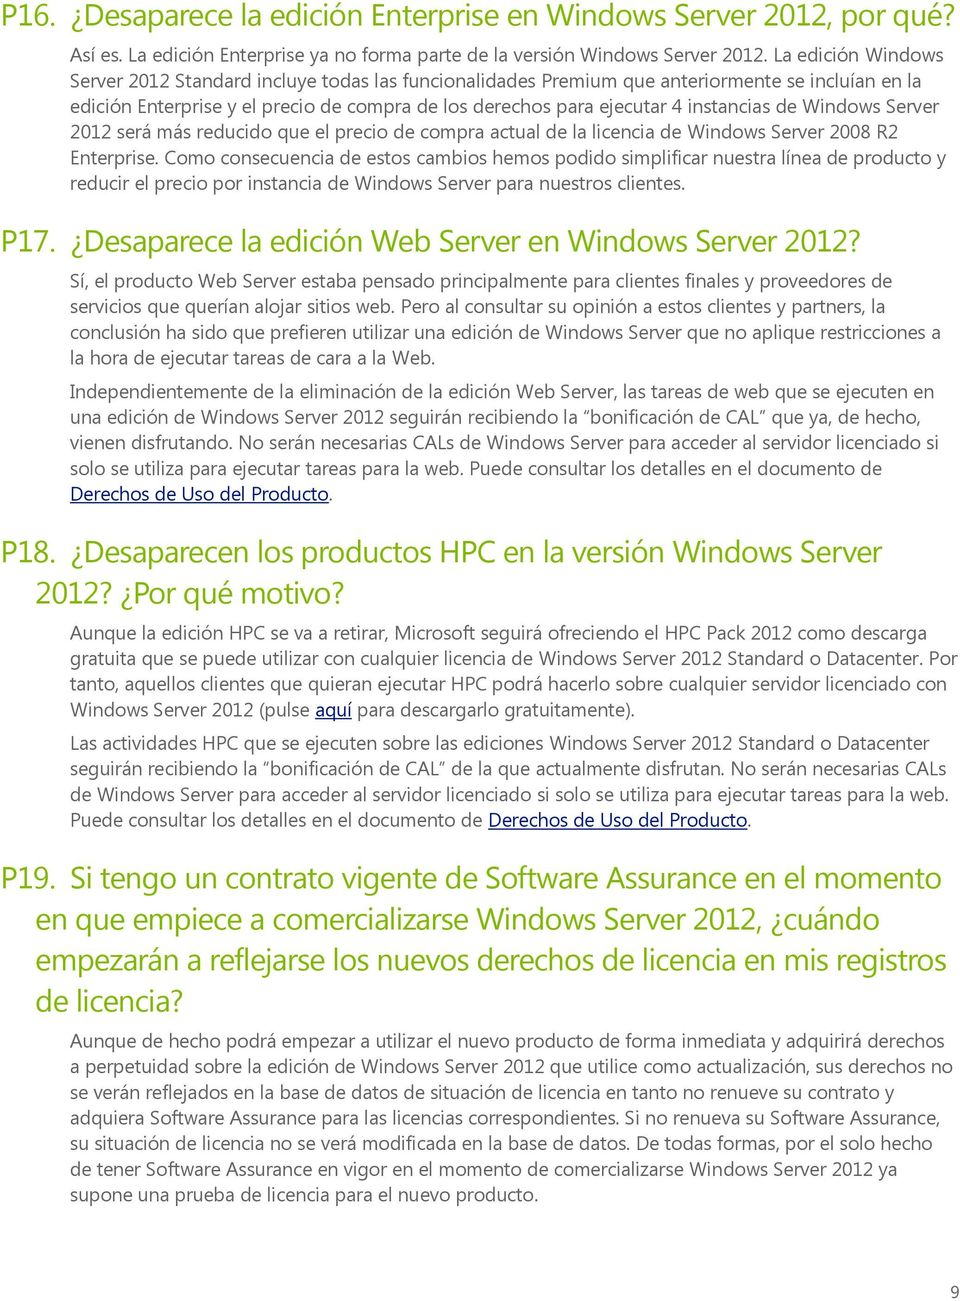 instancias de Windows Server 2012 será más reducido que el precio de compra actual de la licencia de Windows Server 2008 R2 Enterprise.